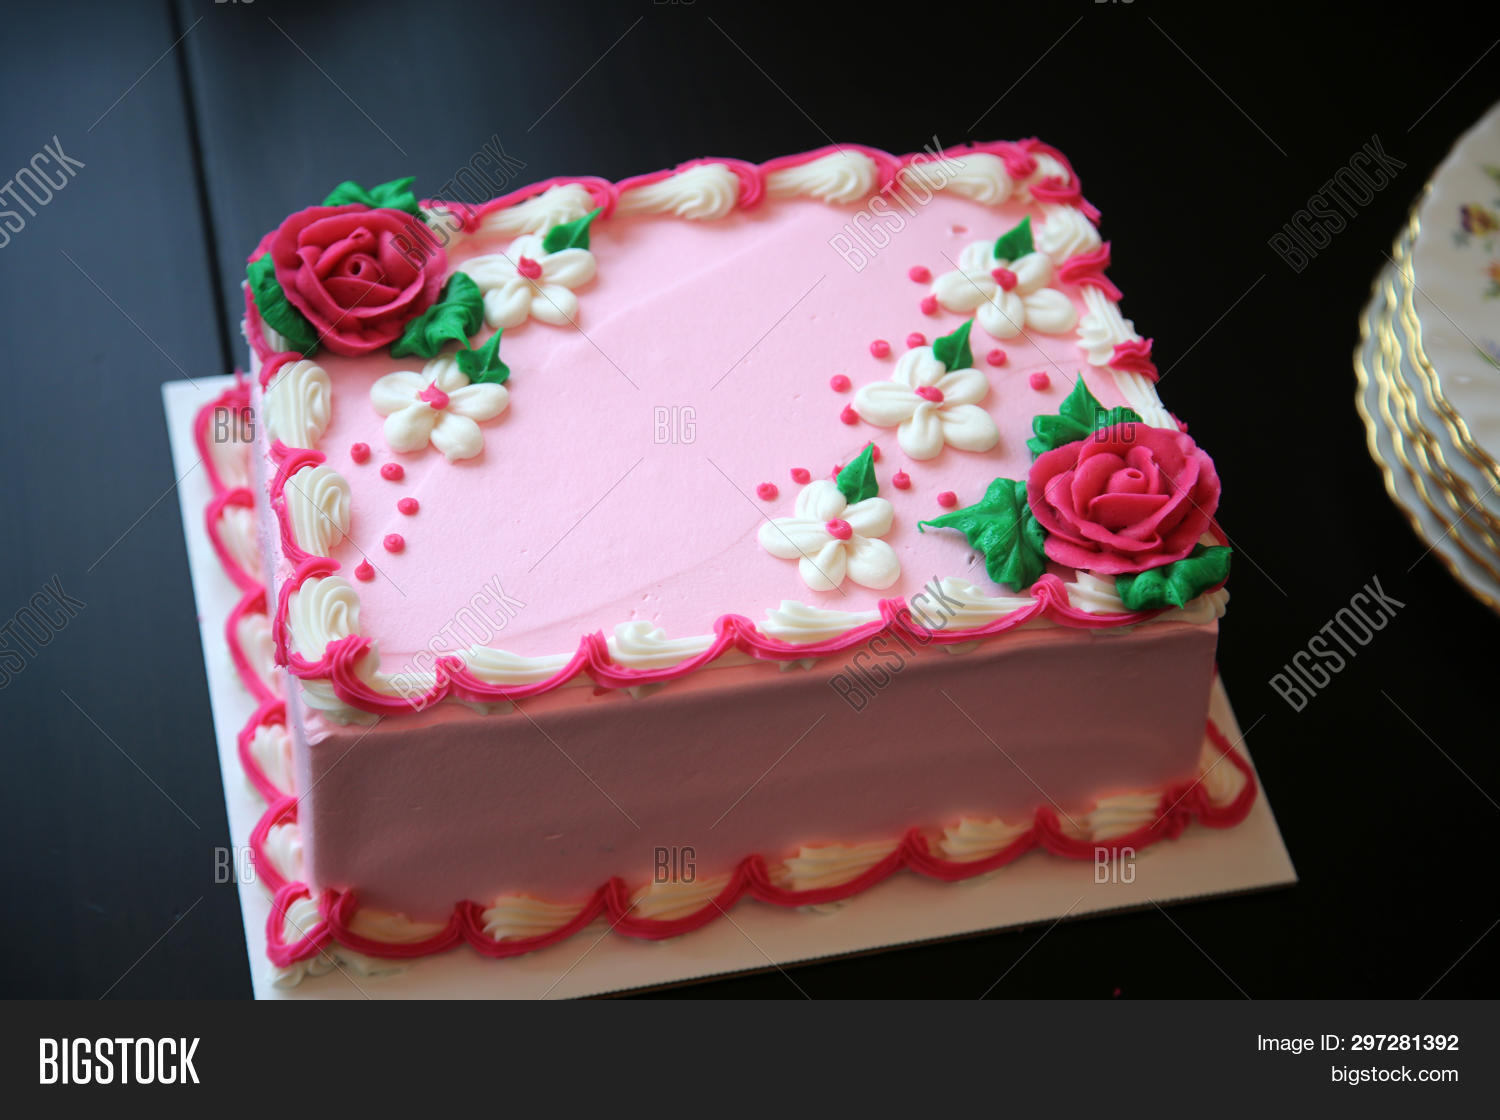 Birthday Cake Pink Ice Cream Blank With Room For Text Food